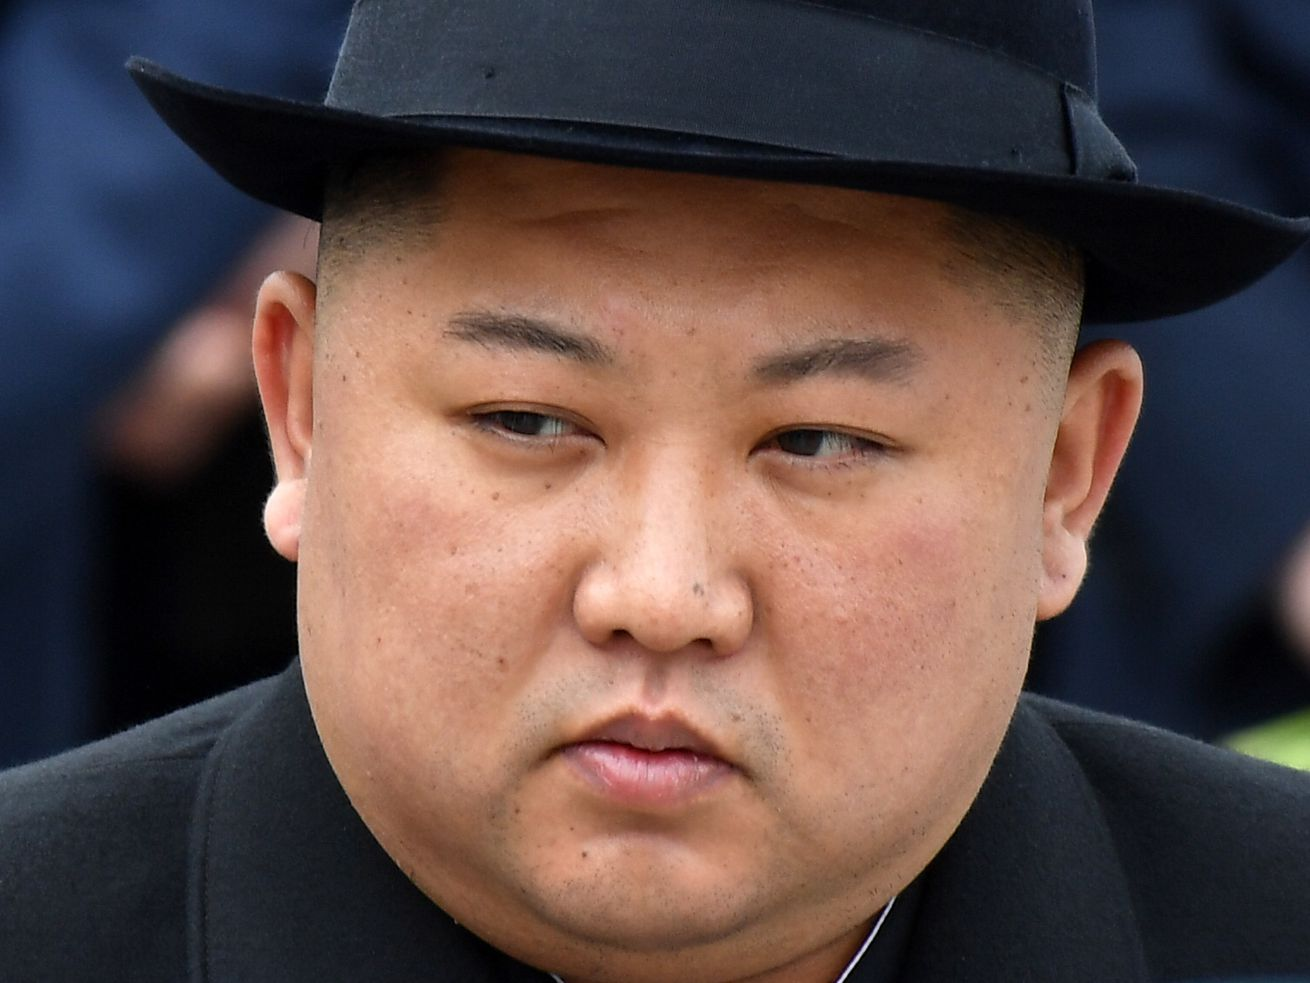 North Korean leader Kim Jong Un before his departure from a railway station in Russia on April 26, 2019.